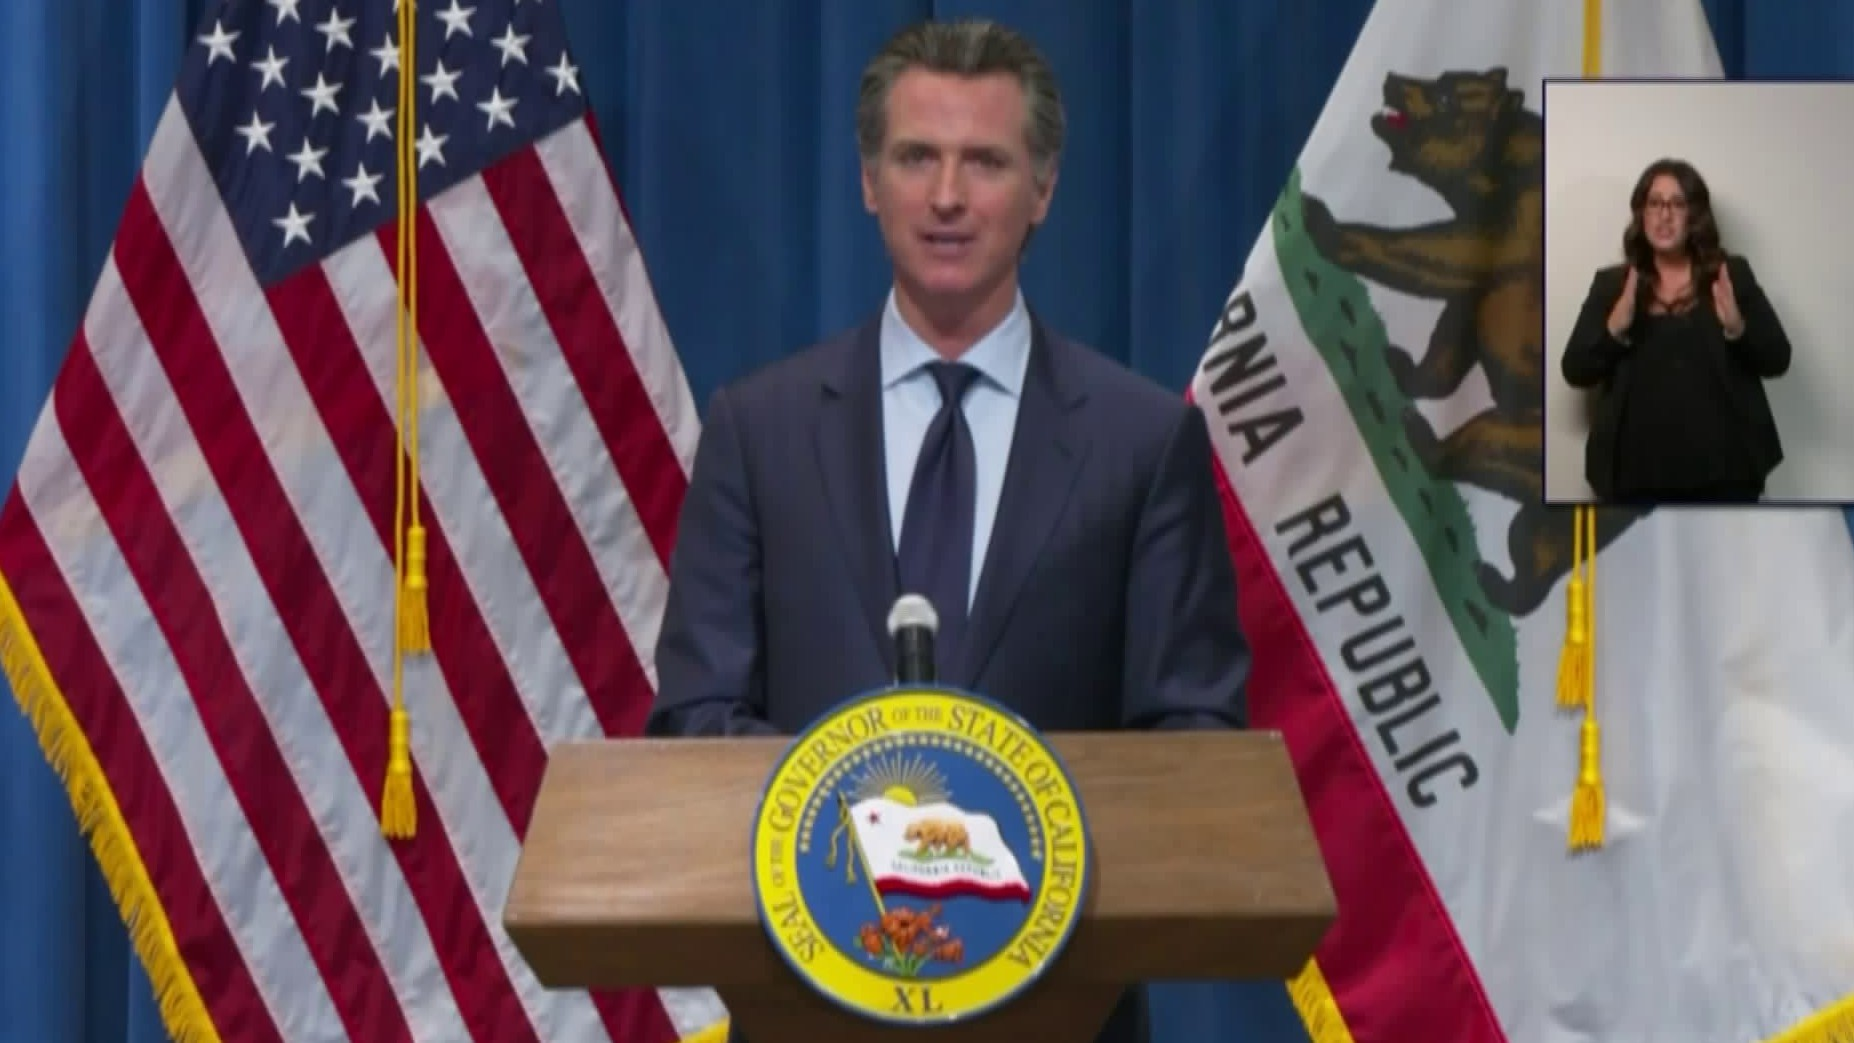 Gov. Gavin Newsom speaks at a news conference on May 14, 2020. (Pool)